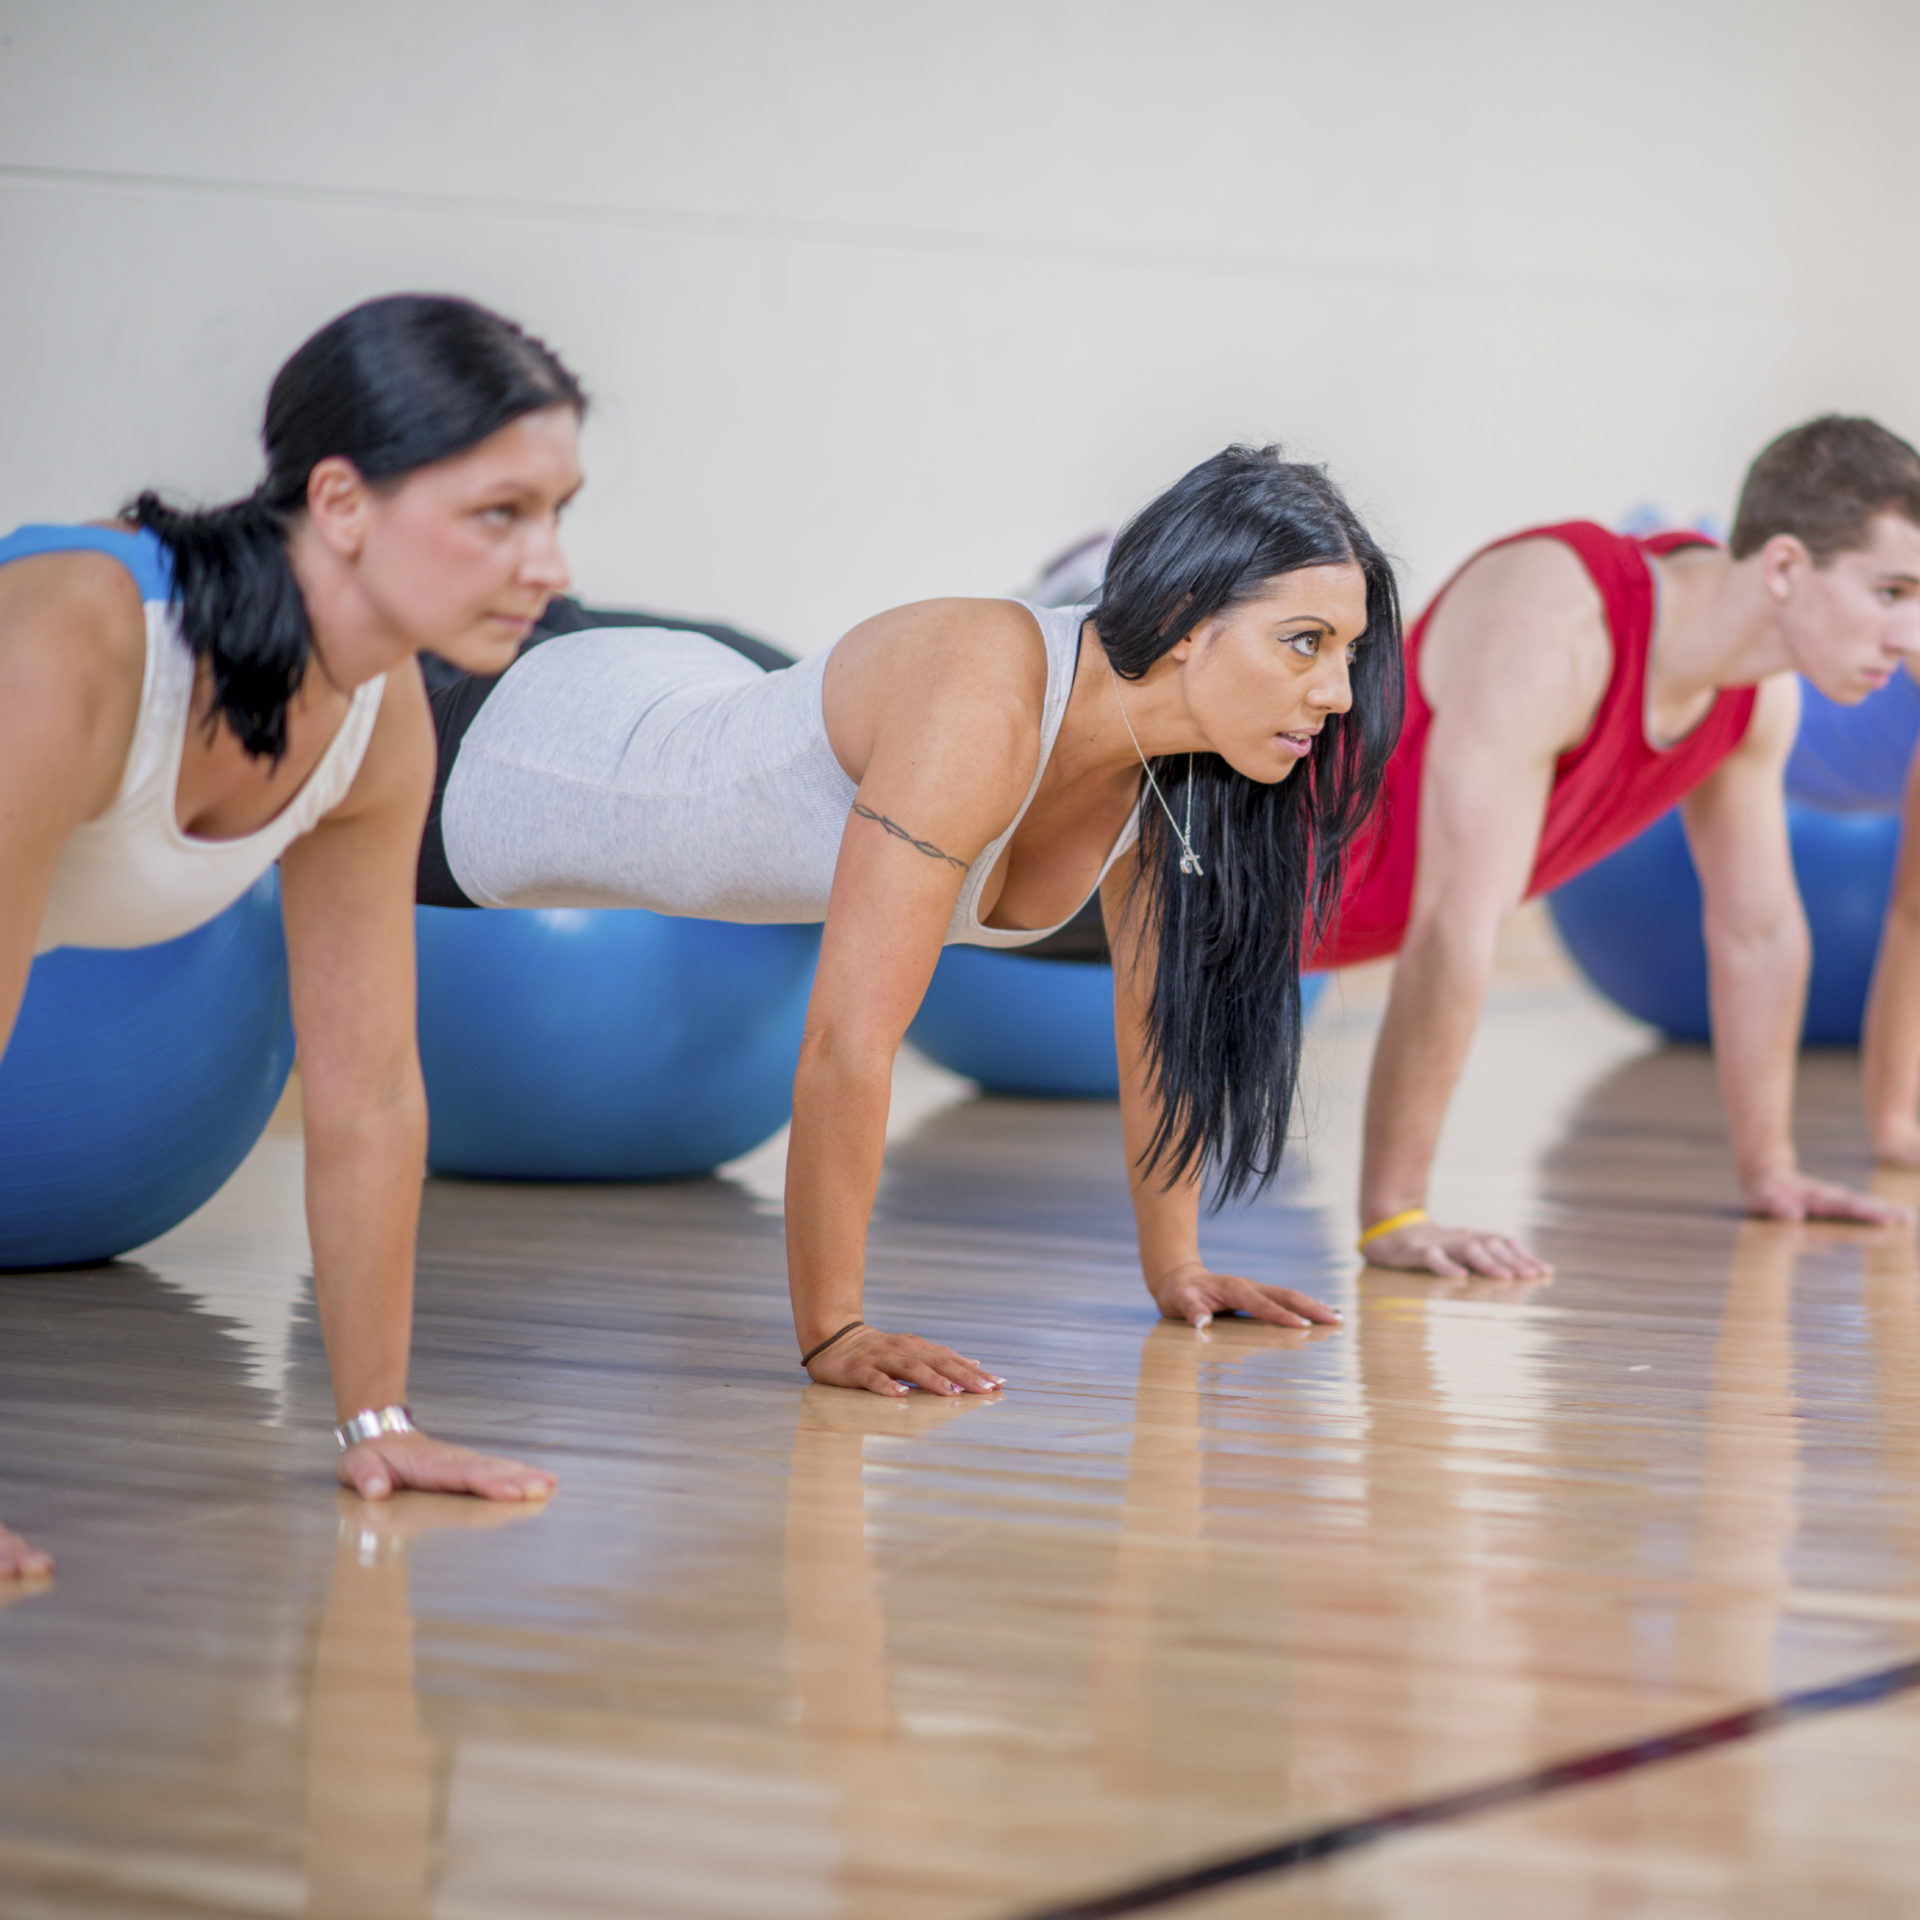 Group Doing Stability Ball Pushups at the Gym